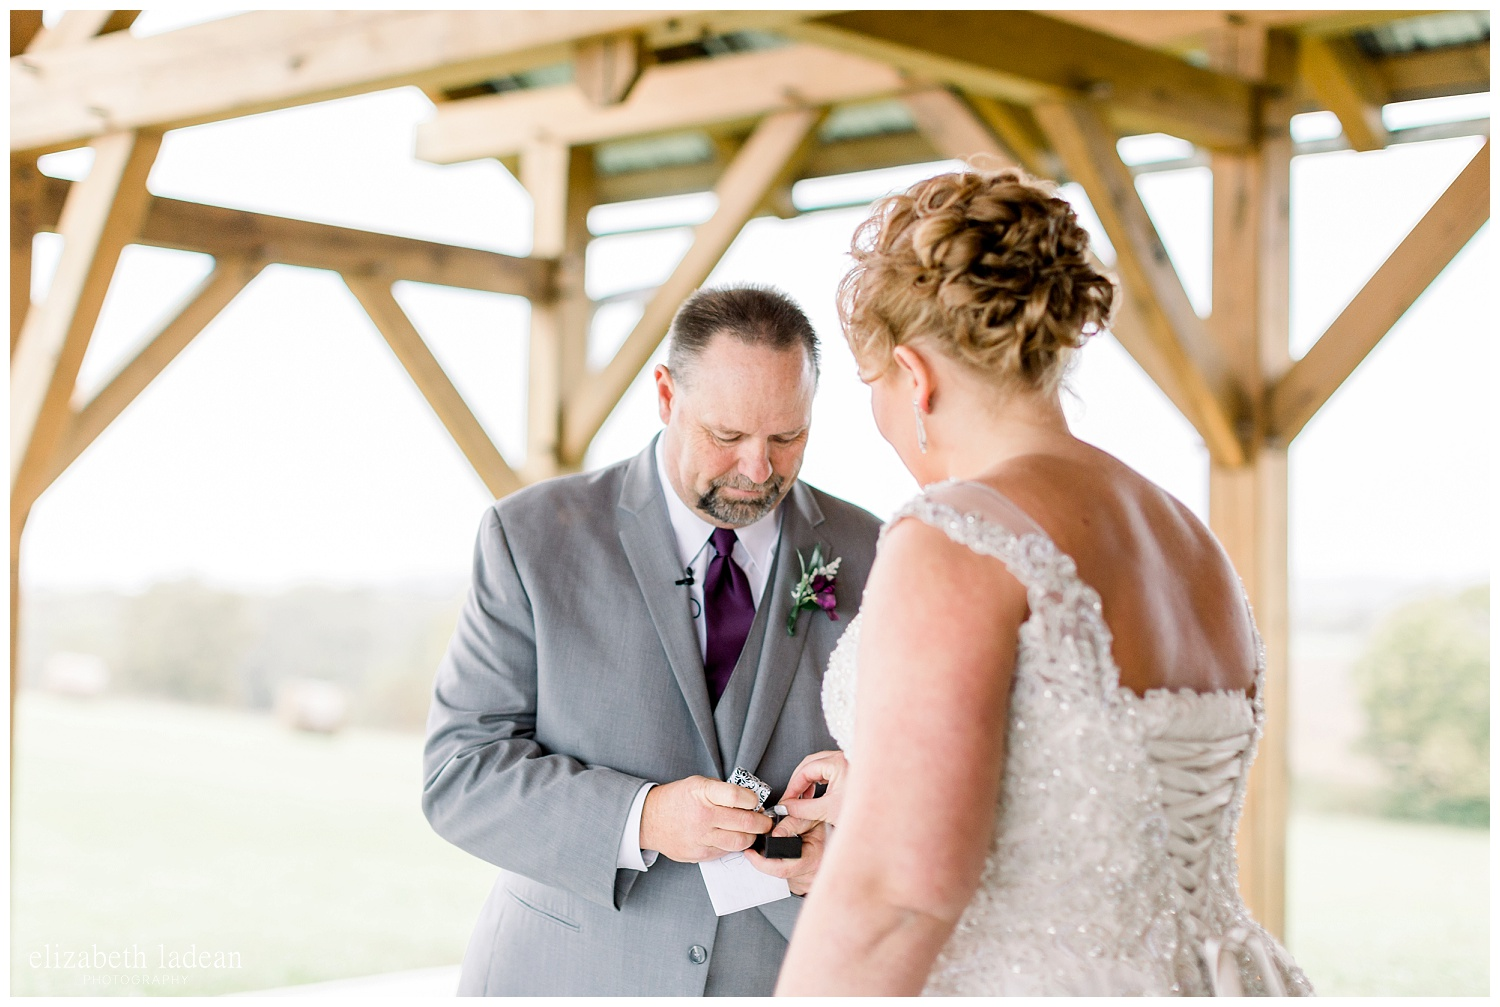 Weston-Timber-Barn-Wedding-Photography-L+A-elizabeth-ladean0photo_1855.jpg